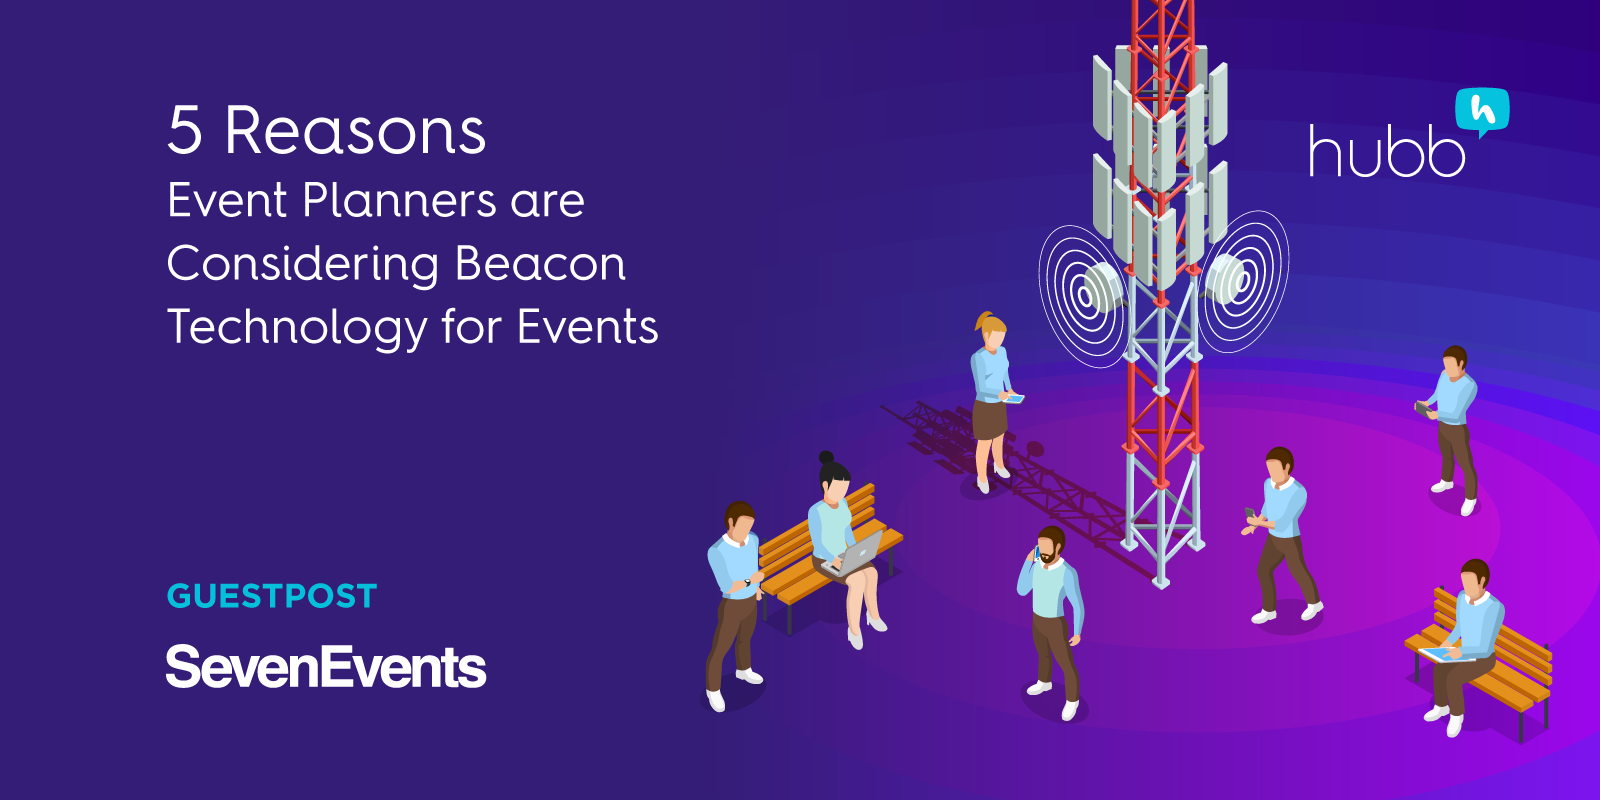 5 Reasons Event Planners are Considering Beacon Technology for Events